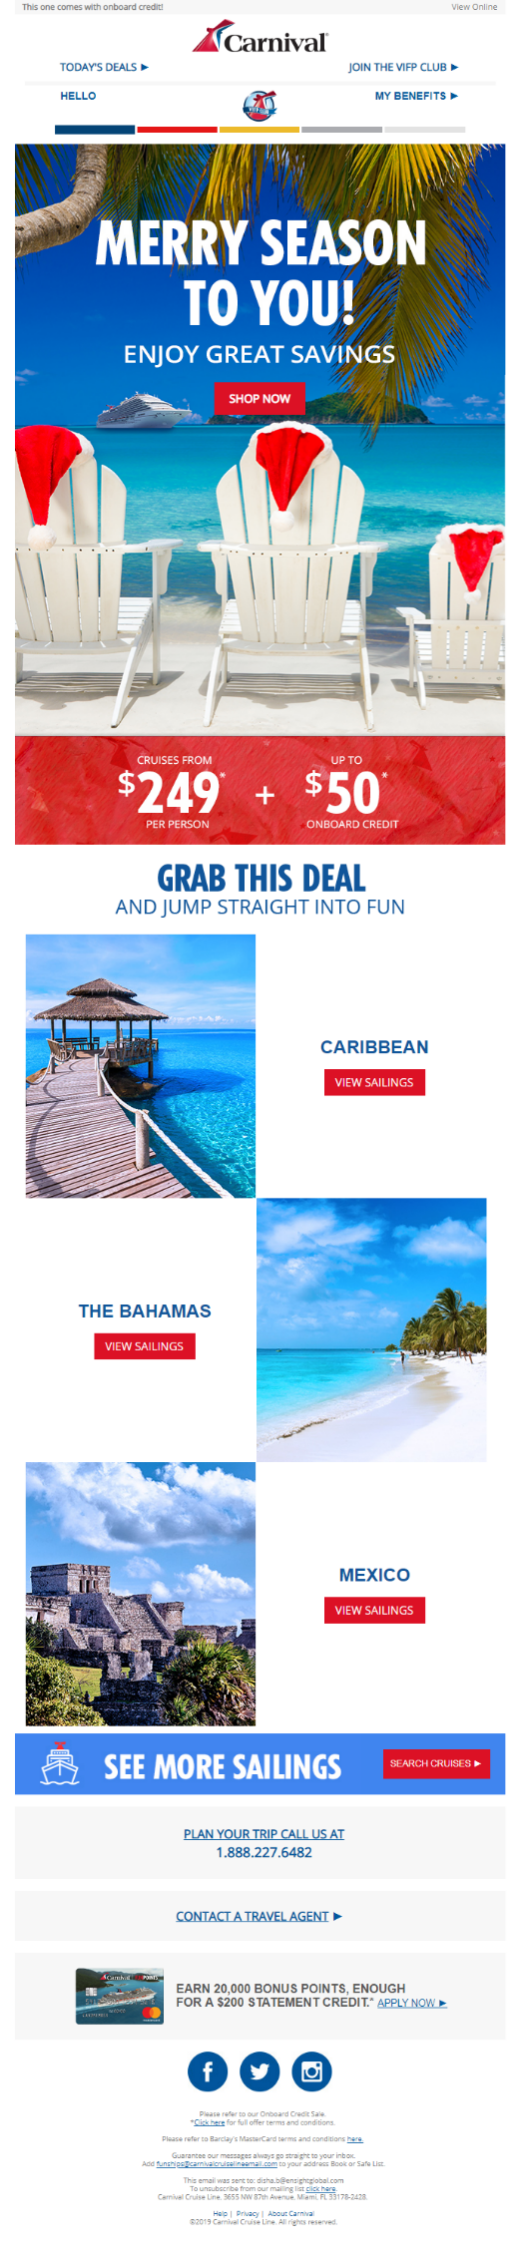 C:\Users\Disha Bhatt\Videos\carnival cruise line - email for holiday.png